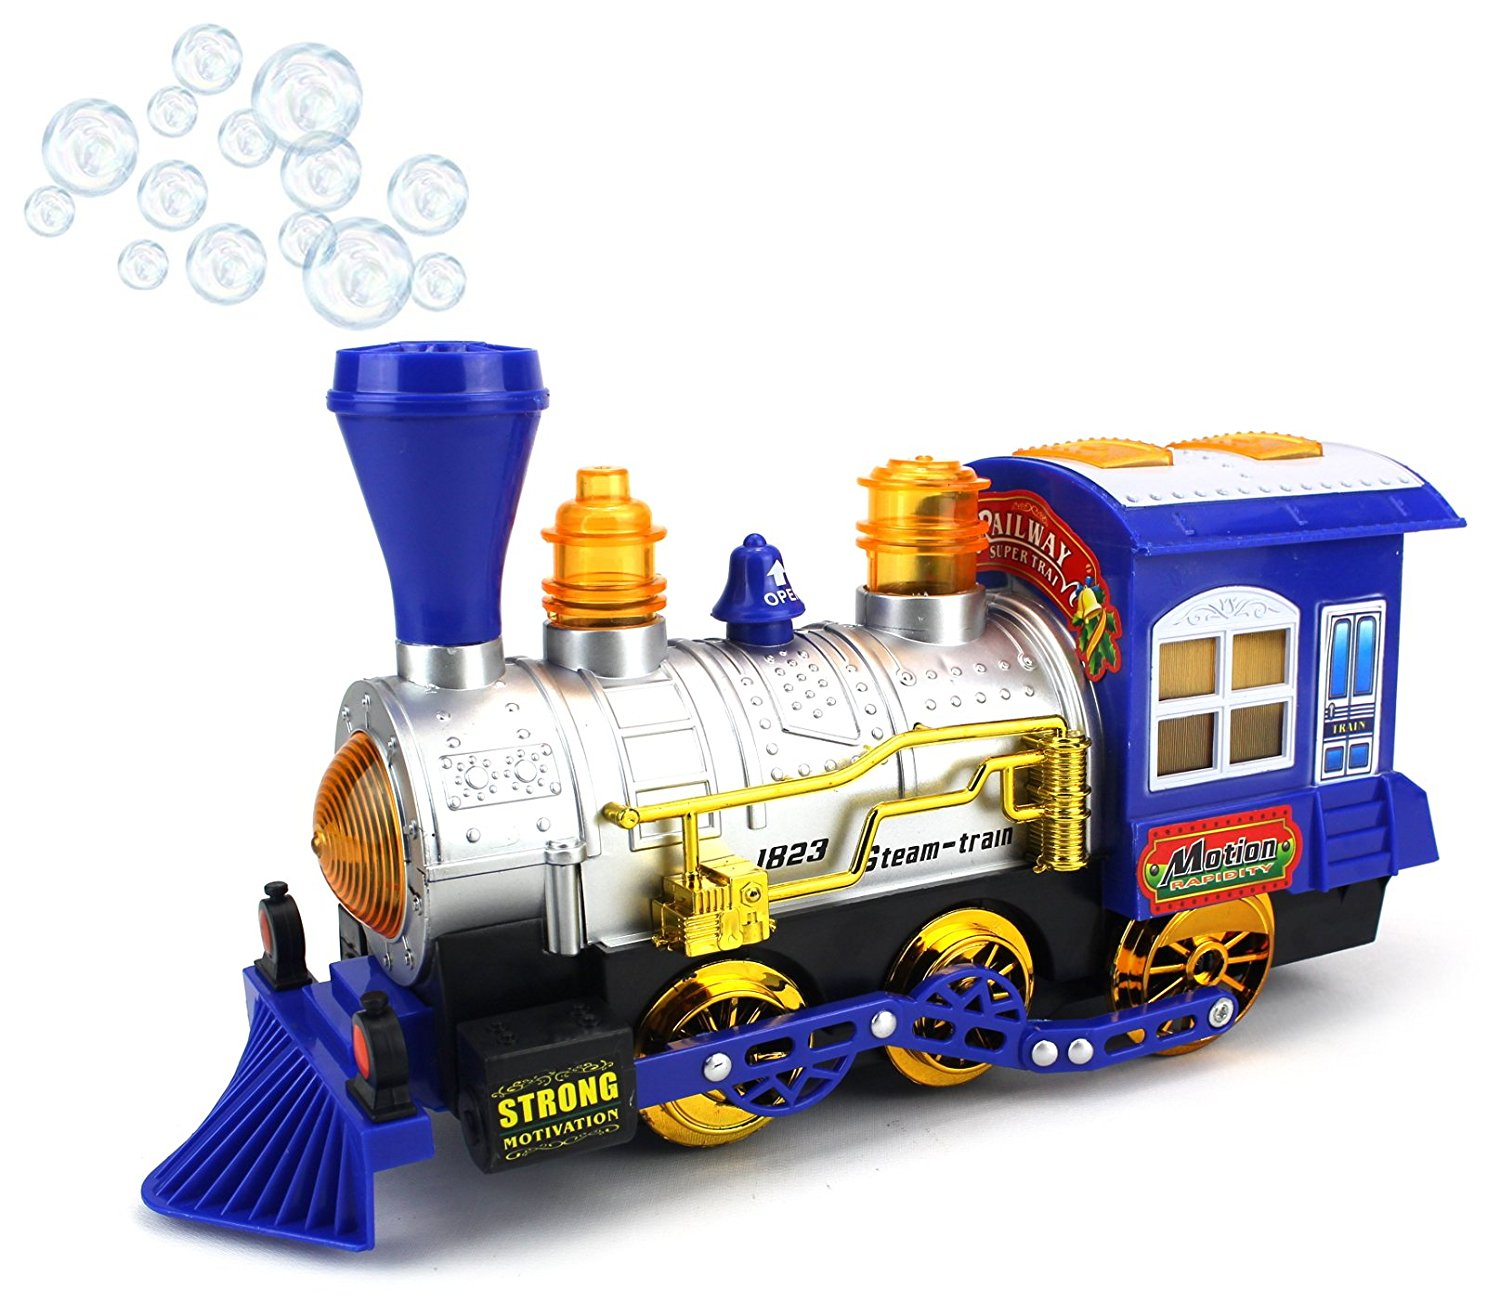 Blue Steam Train Locomotive Engine Car Bubble Blowing Bump & Go Battery Operated Toy Train... by Velocity Toys